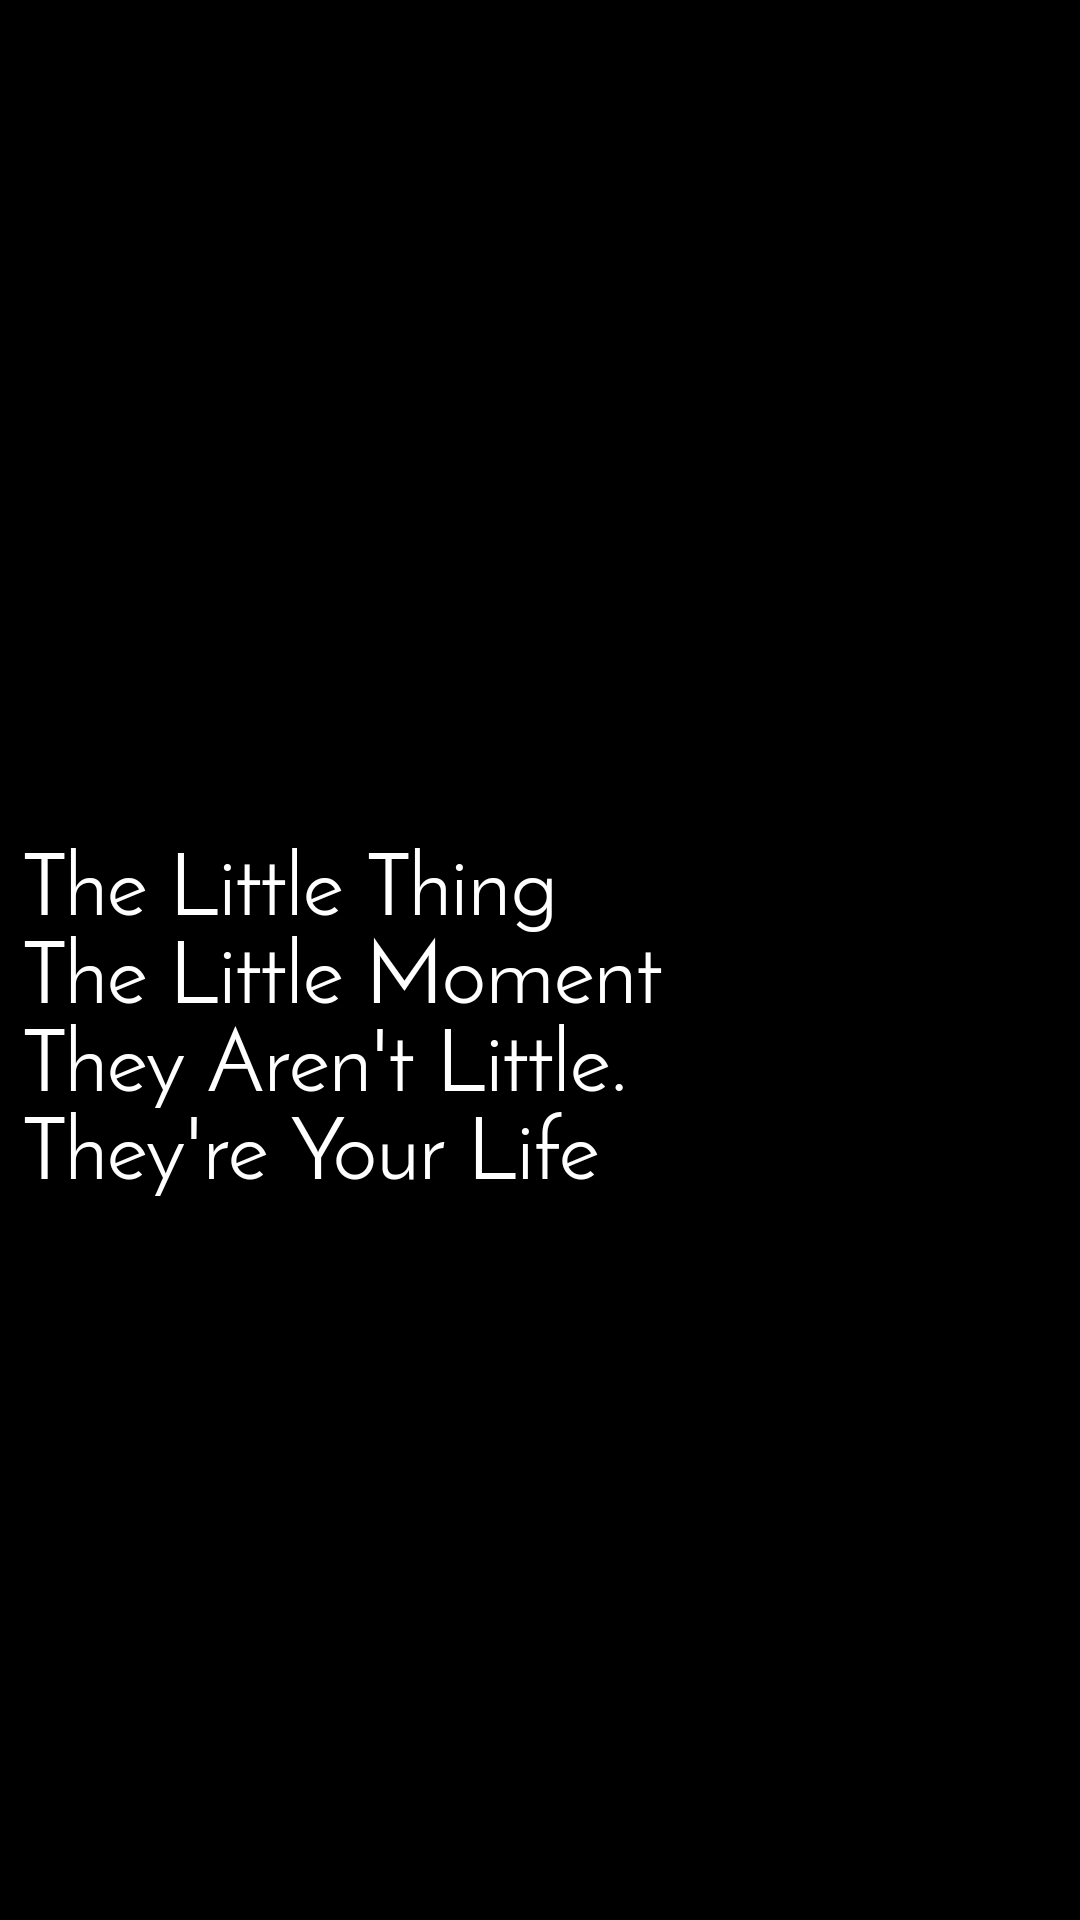 The Little Thing  The Little Moment  They Aren't Little. They're Your Life